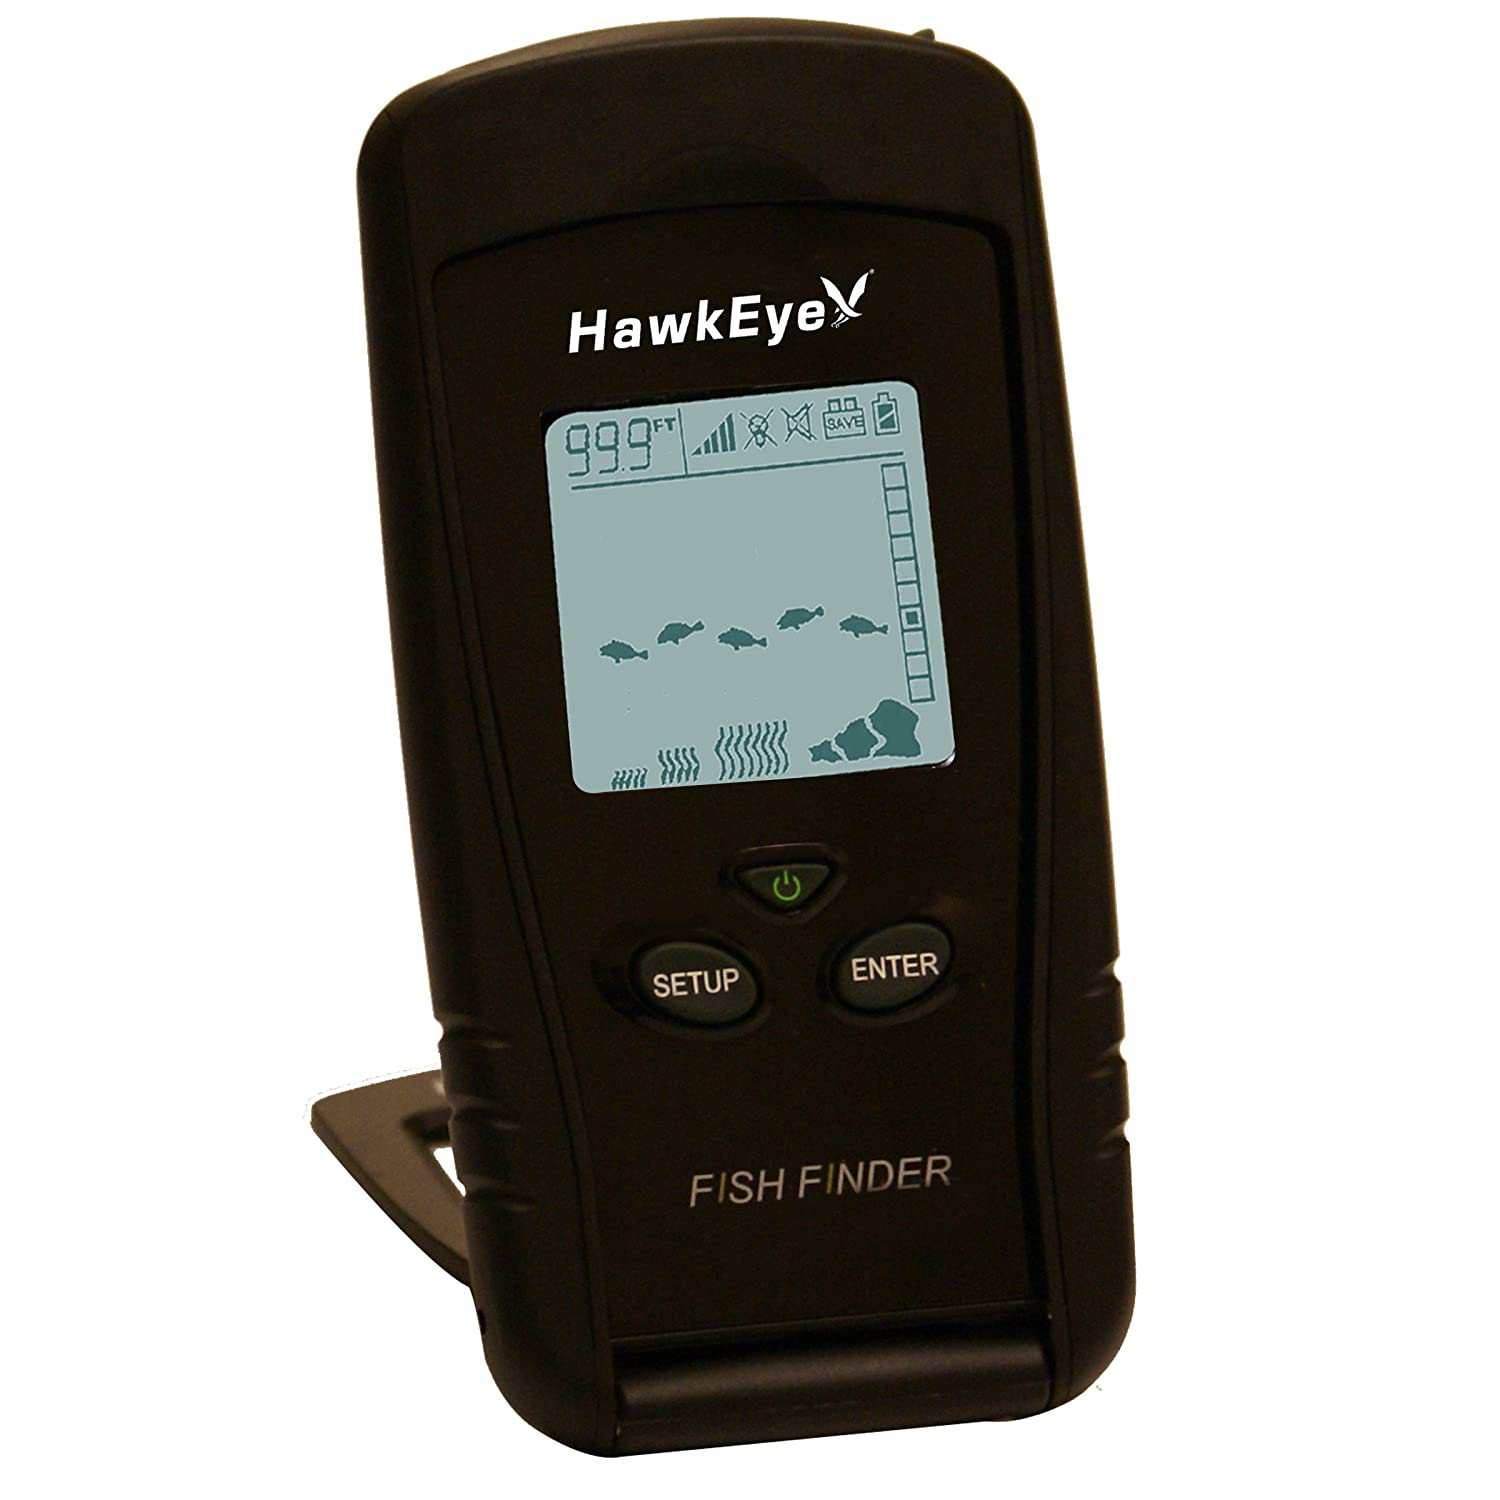 best norcross hawkeye fish finder